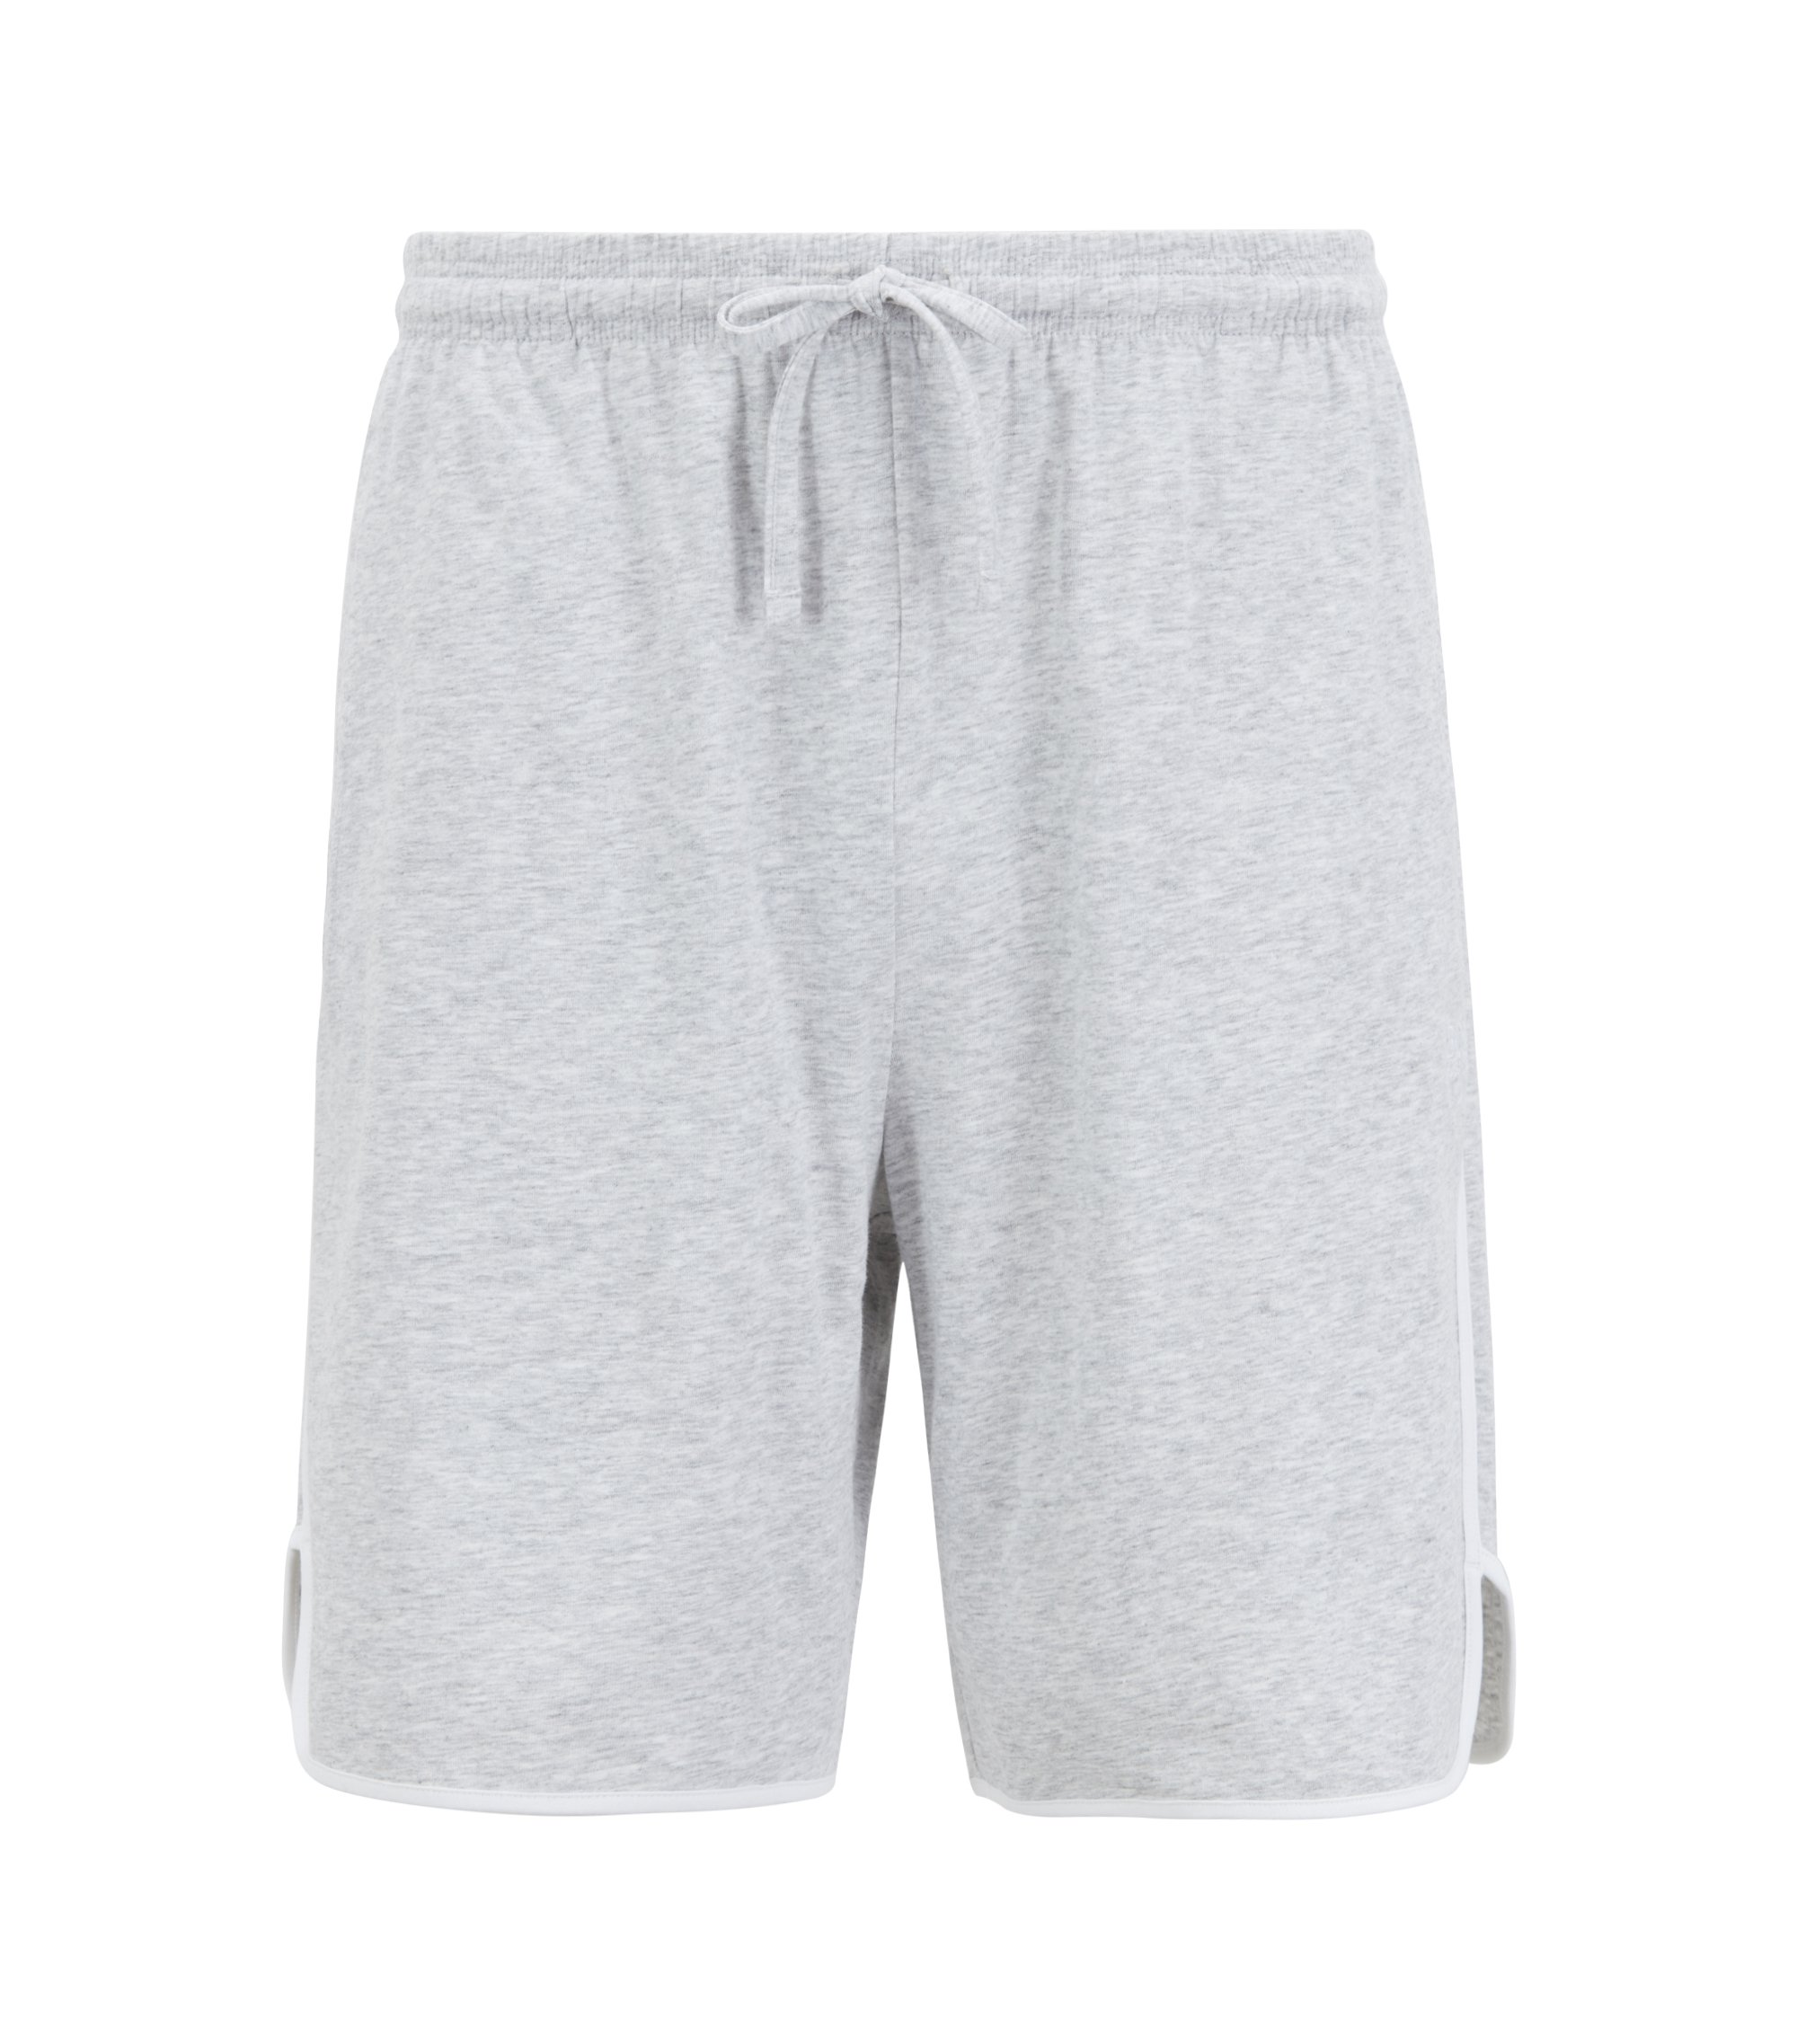 Loungewear-Shorts aus Single Jersey mit kontrastfarbenen Paspeln, Grau